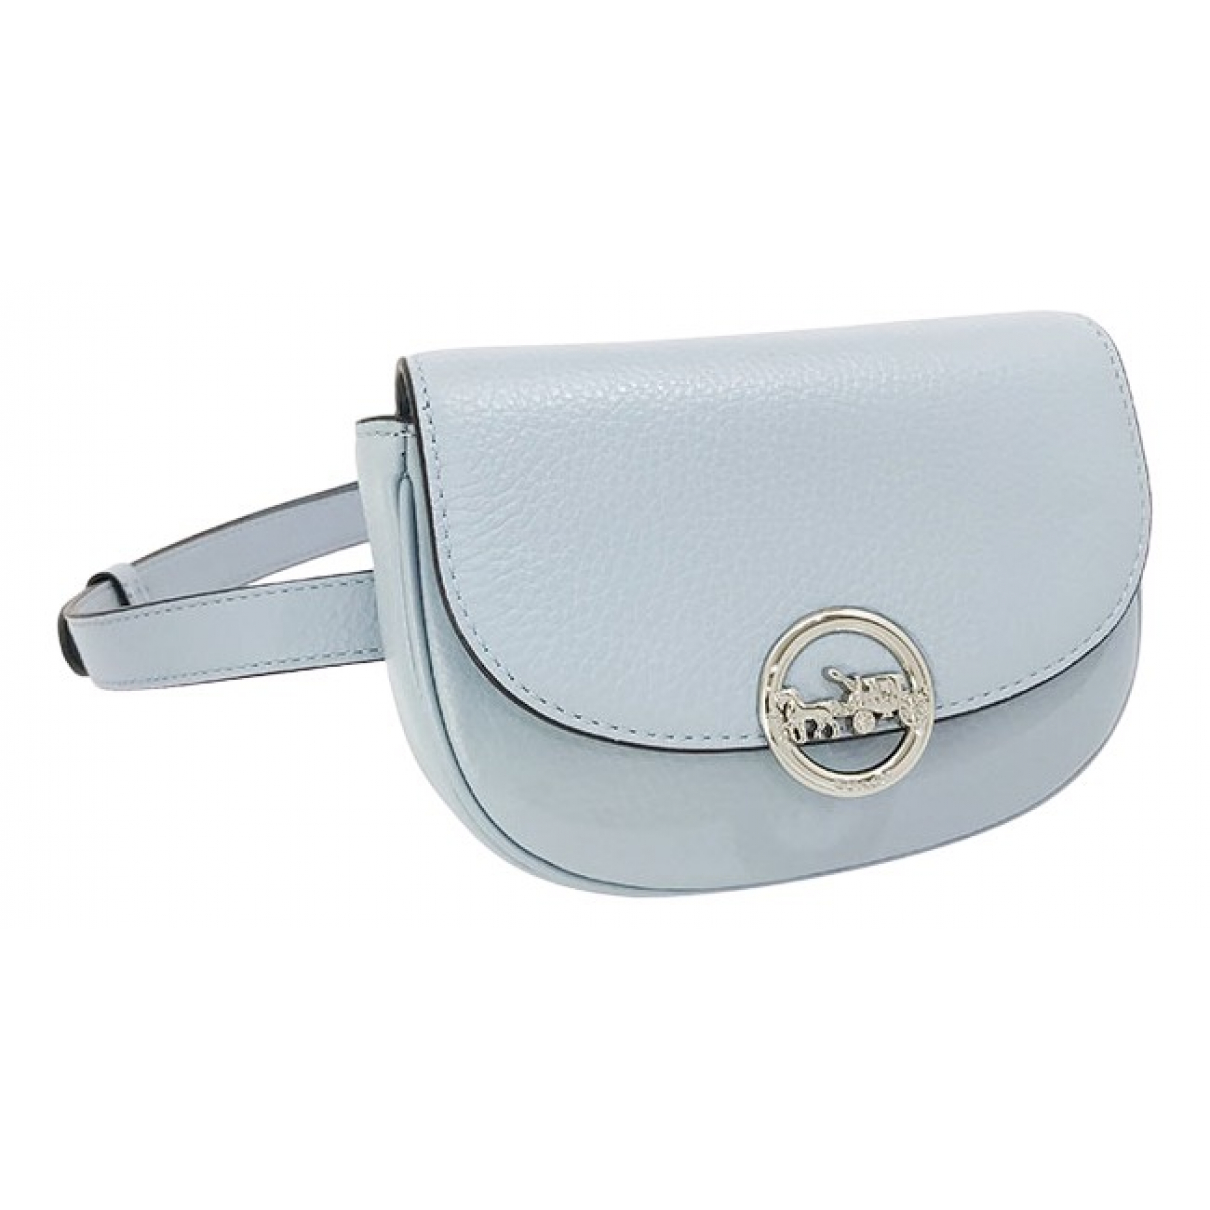 Coach \N Blue Leather Clutch bag for Women \N